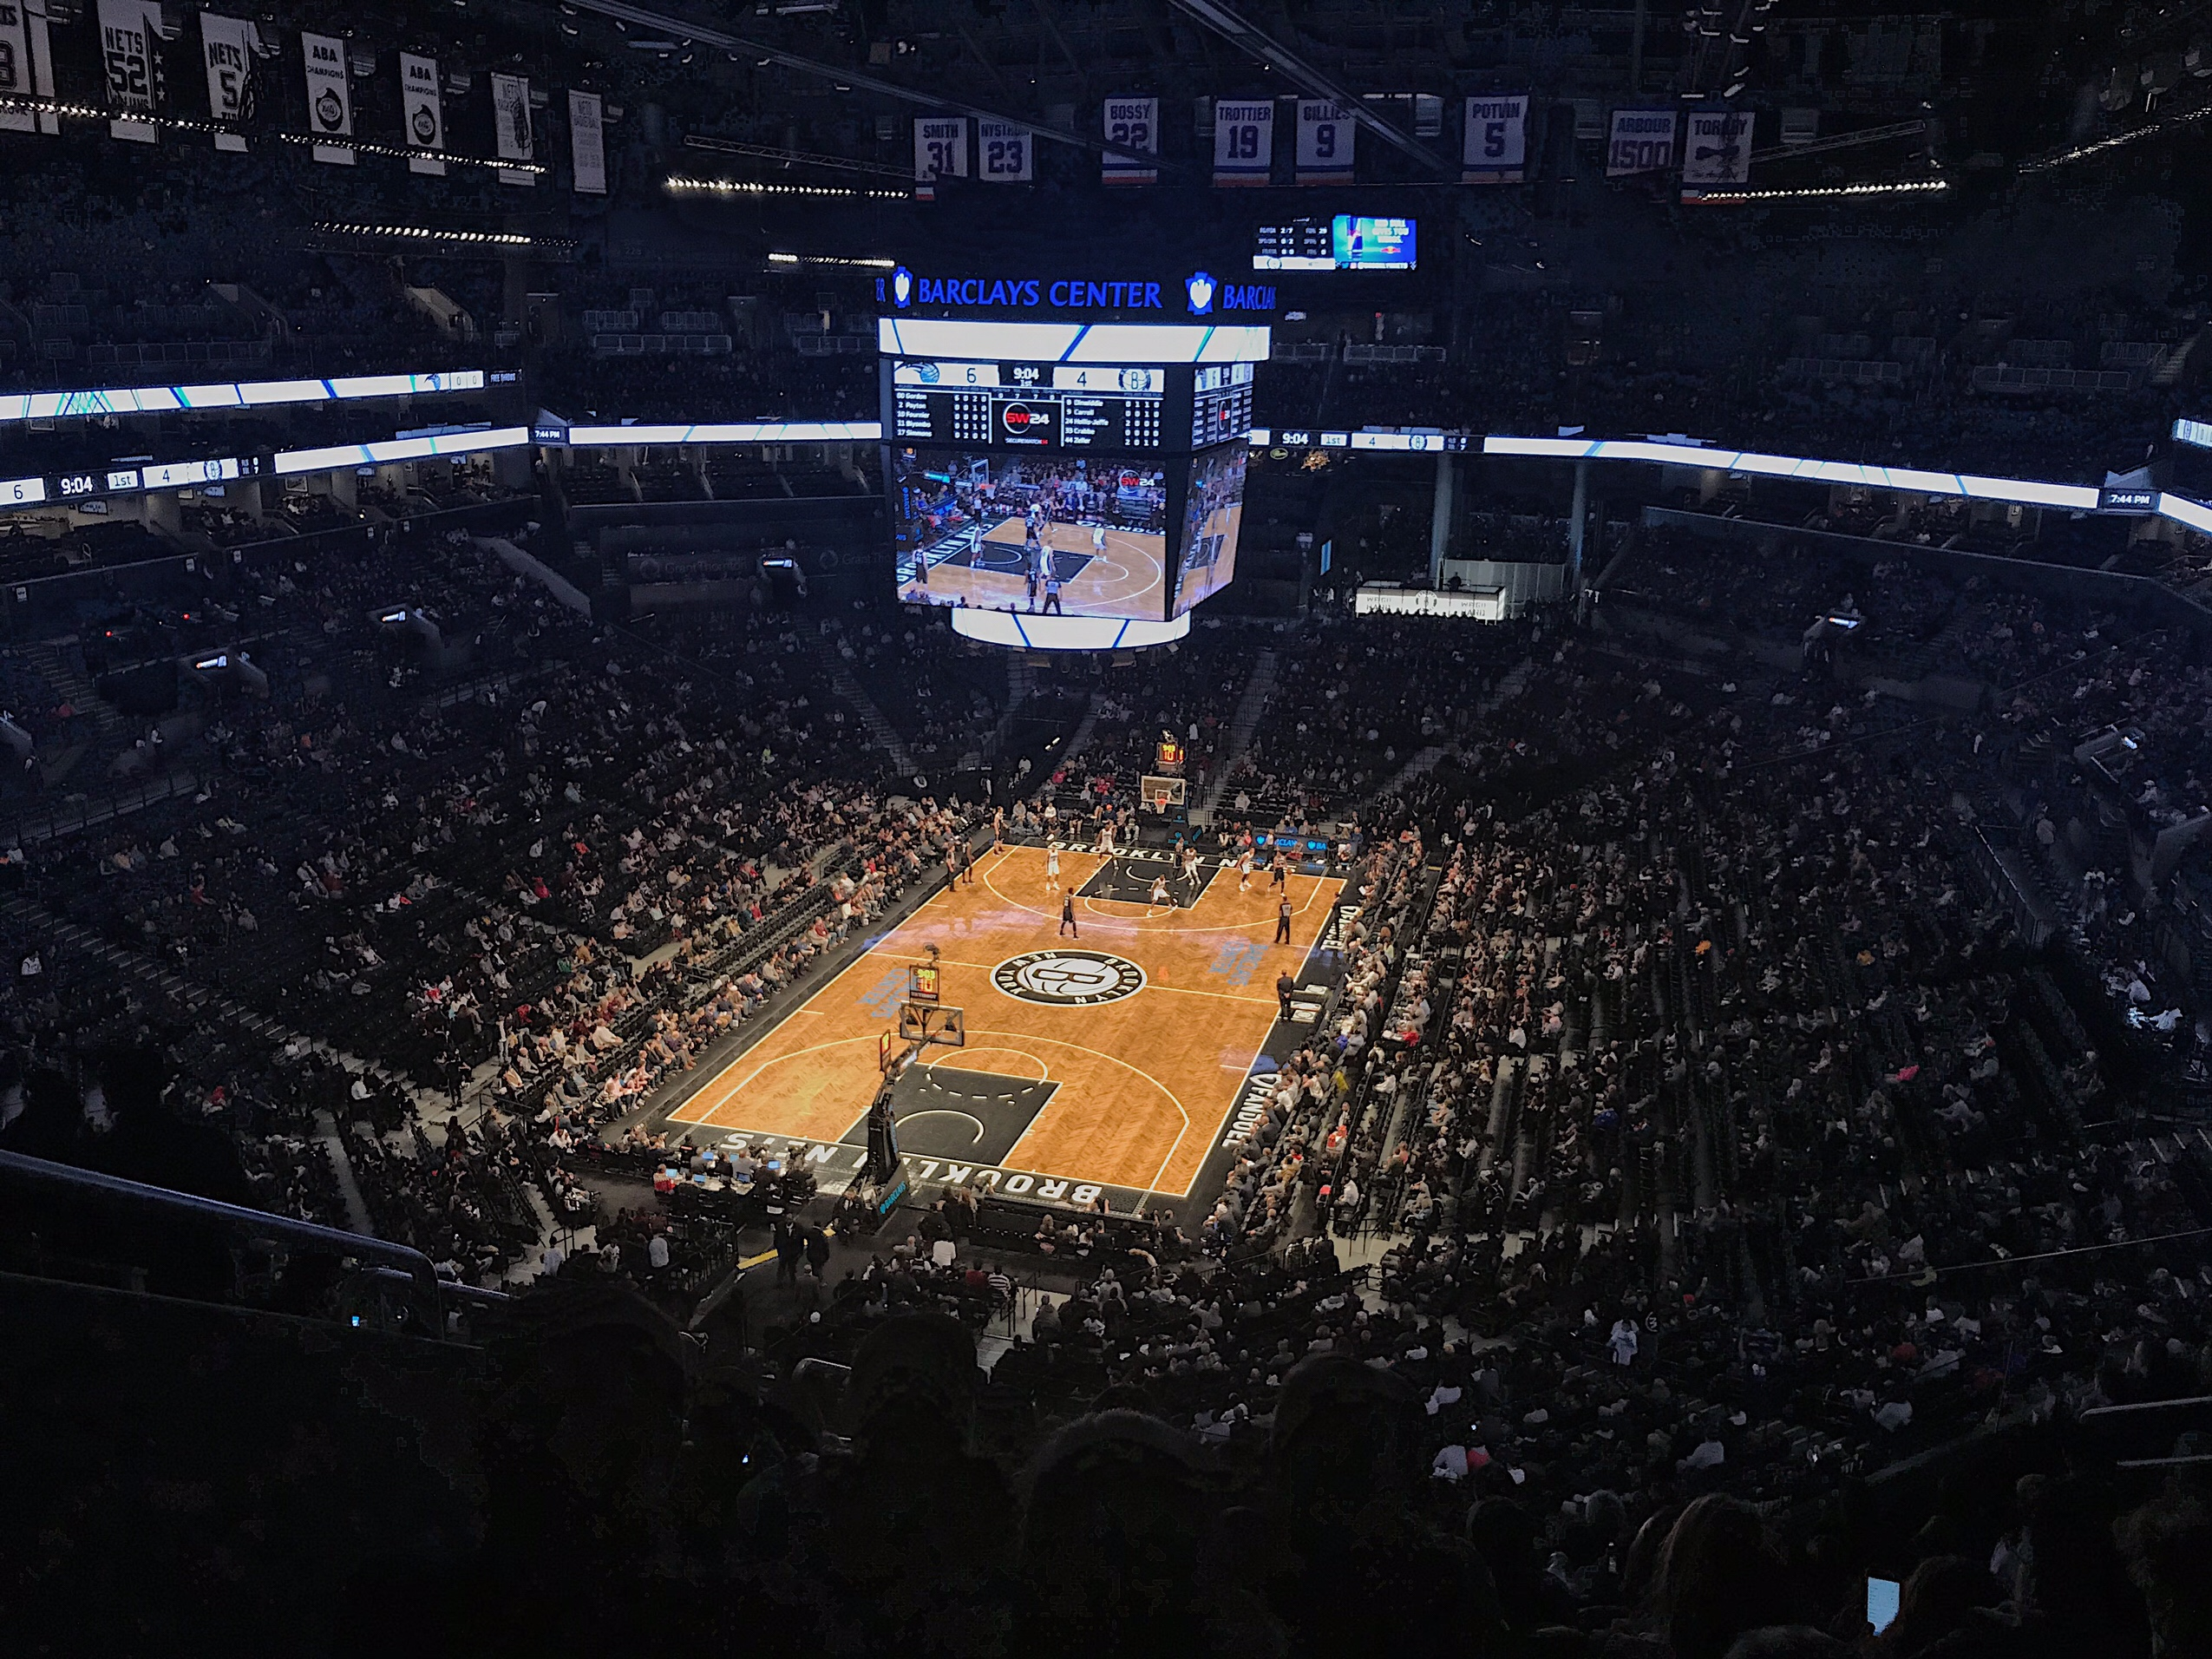 image of the Brooklyn nets in New York